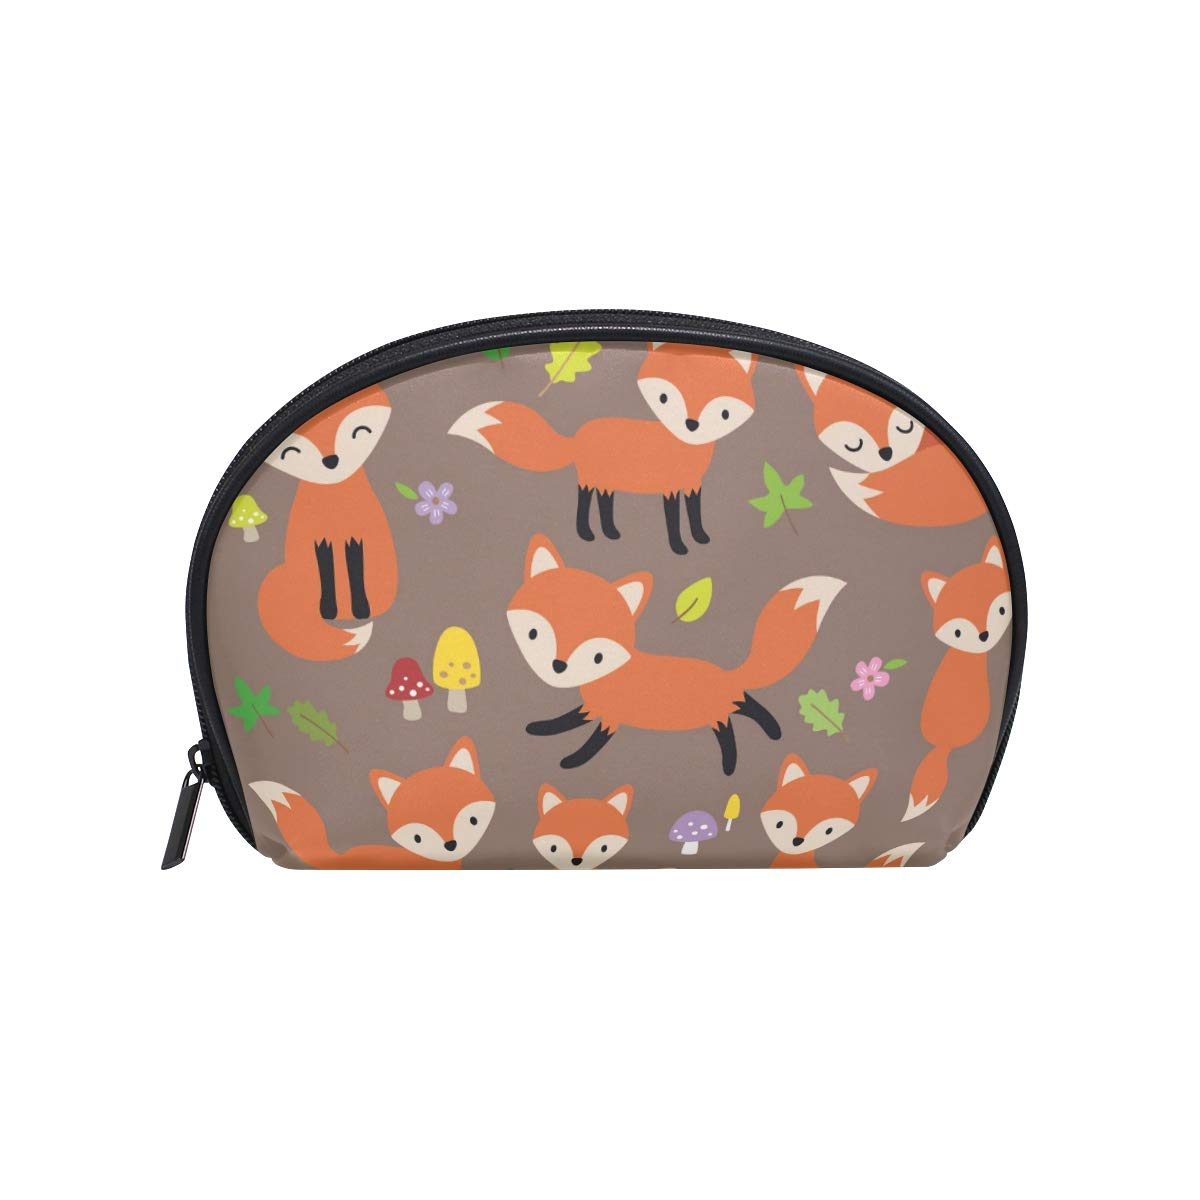 Portable Travel Makeup Bag Cosmetic Bag Orange Fox Toiletry Bag Organizer Accessories Case, Tools Case for Women